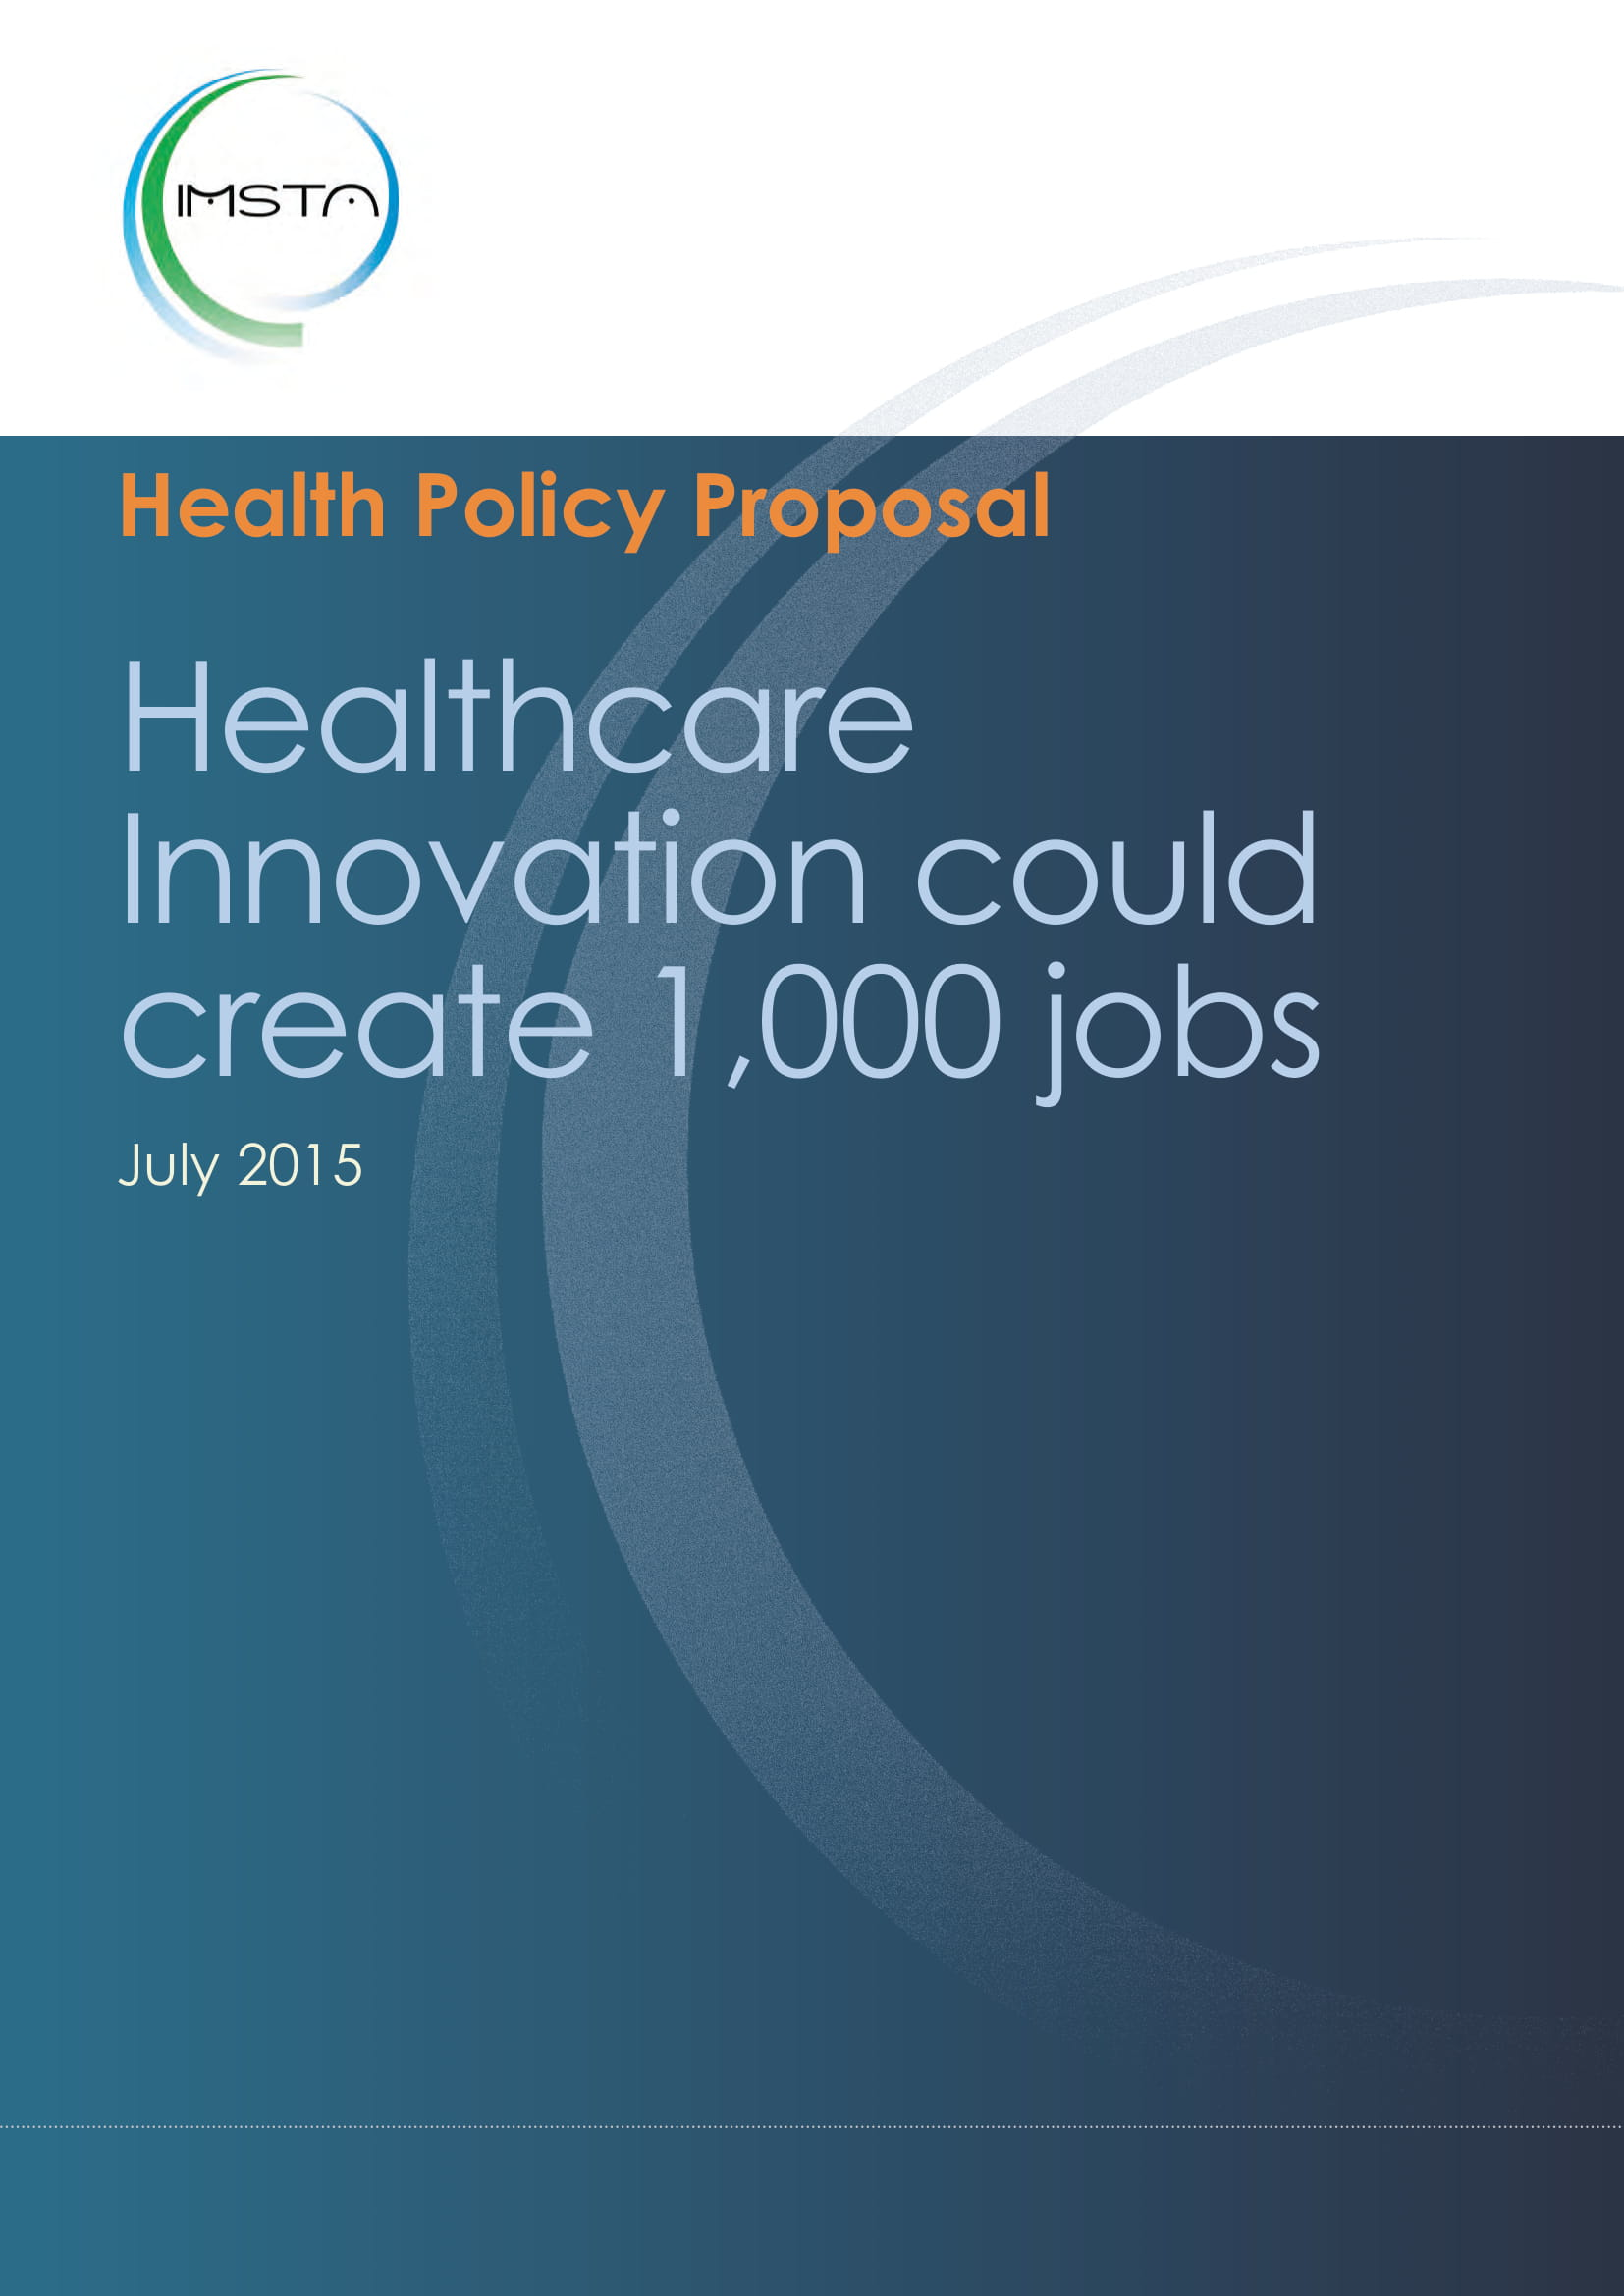 Healthcare Innovation could create 1,000 jobs